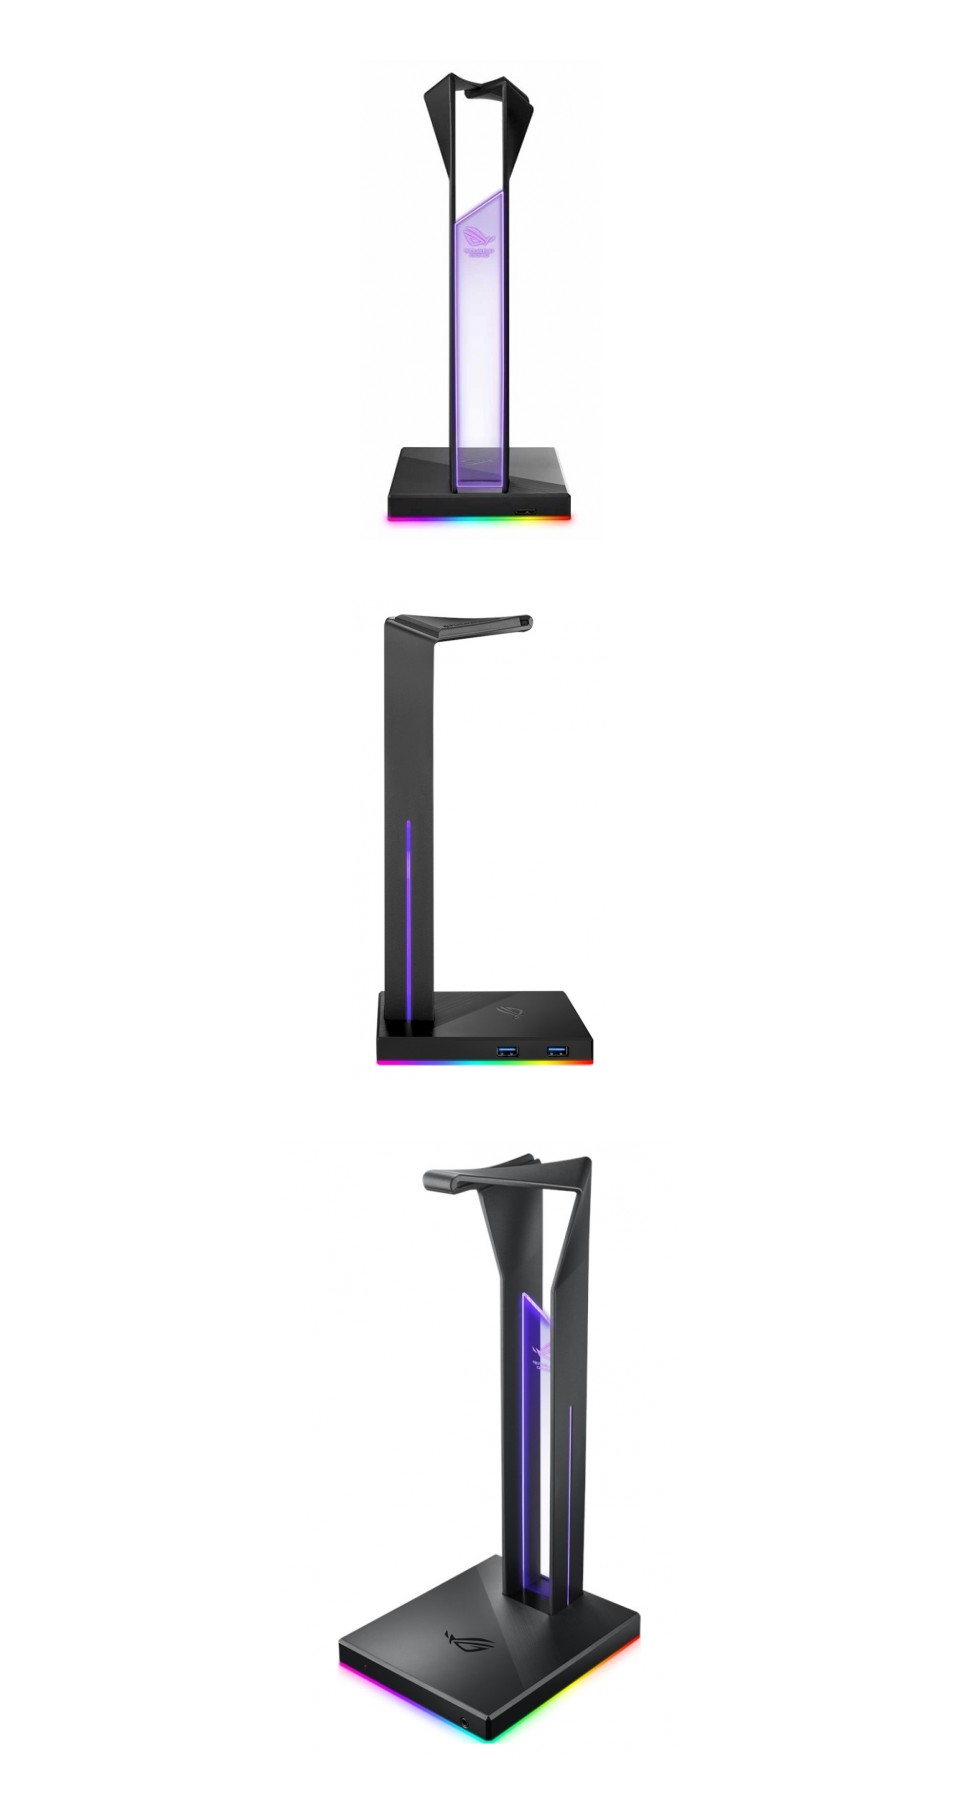 ASUS ROG Throne RGB Headset Stand product